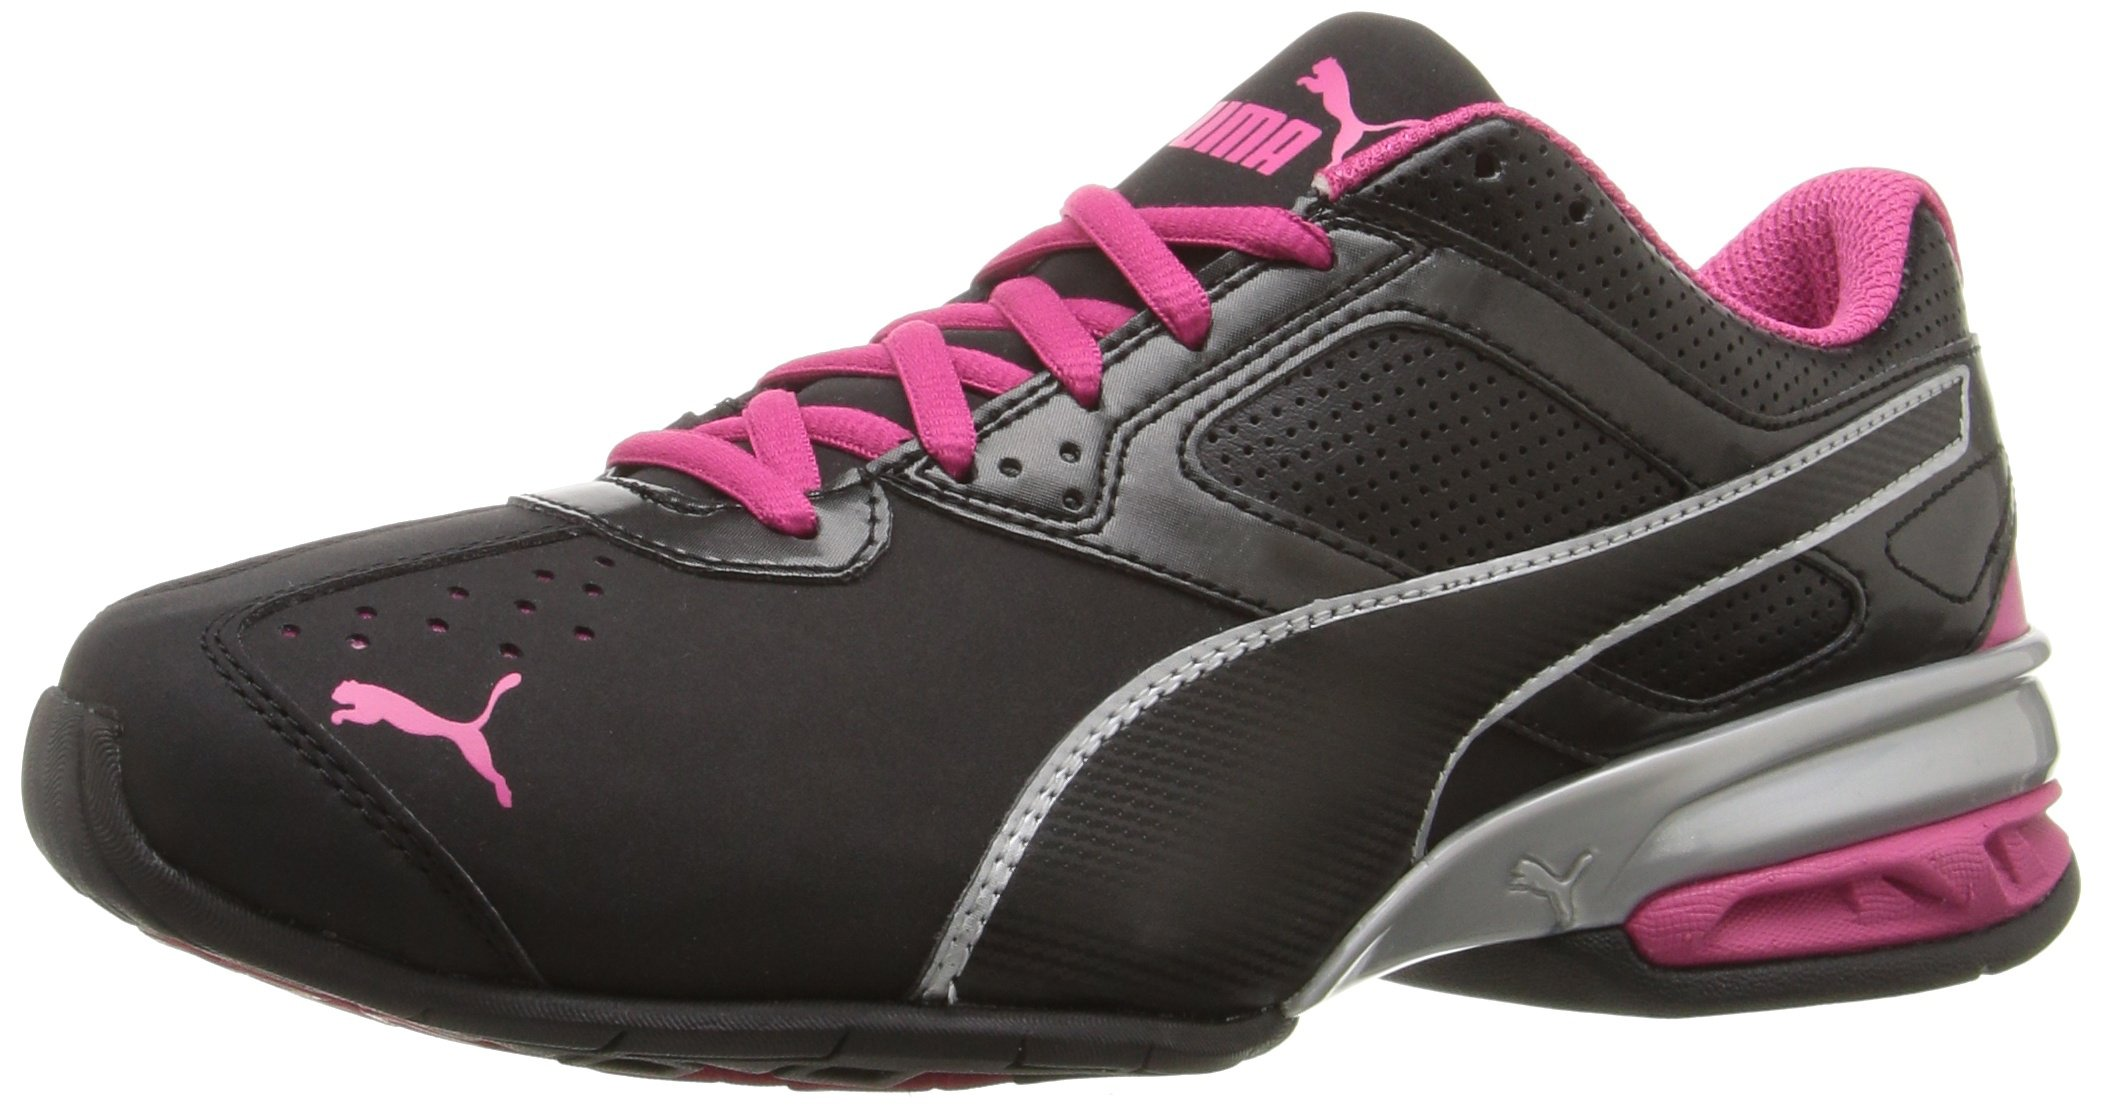 PUMA Women's Tazon 6 WN's fm Cross-Trainer Shoe Black Silver/Beetroot Purple, 5.5 M US